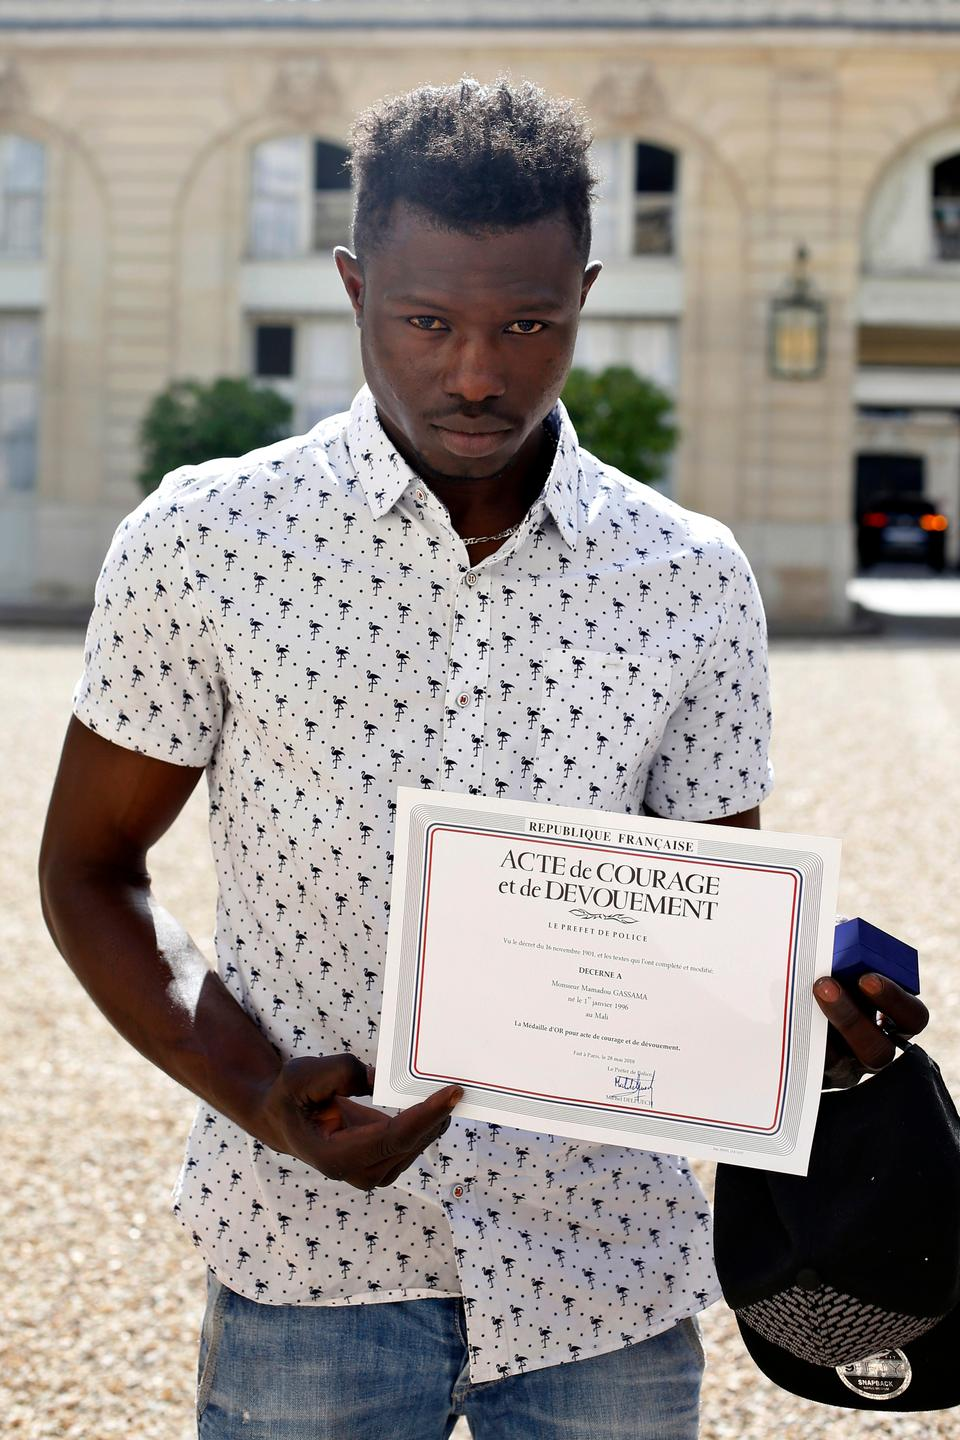 A 22-year old Mamoudou Gassama from Mali displays a certificate of courage and dedication signed by Paris Police Prefect Michel Delpuech as he leaves the presidential Elysee Palace after his meeting with French president in Paris, on May, 28, 2018.